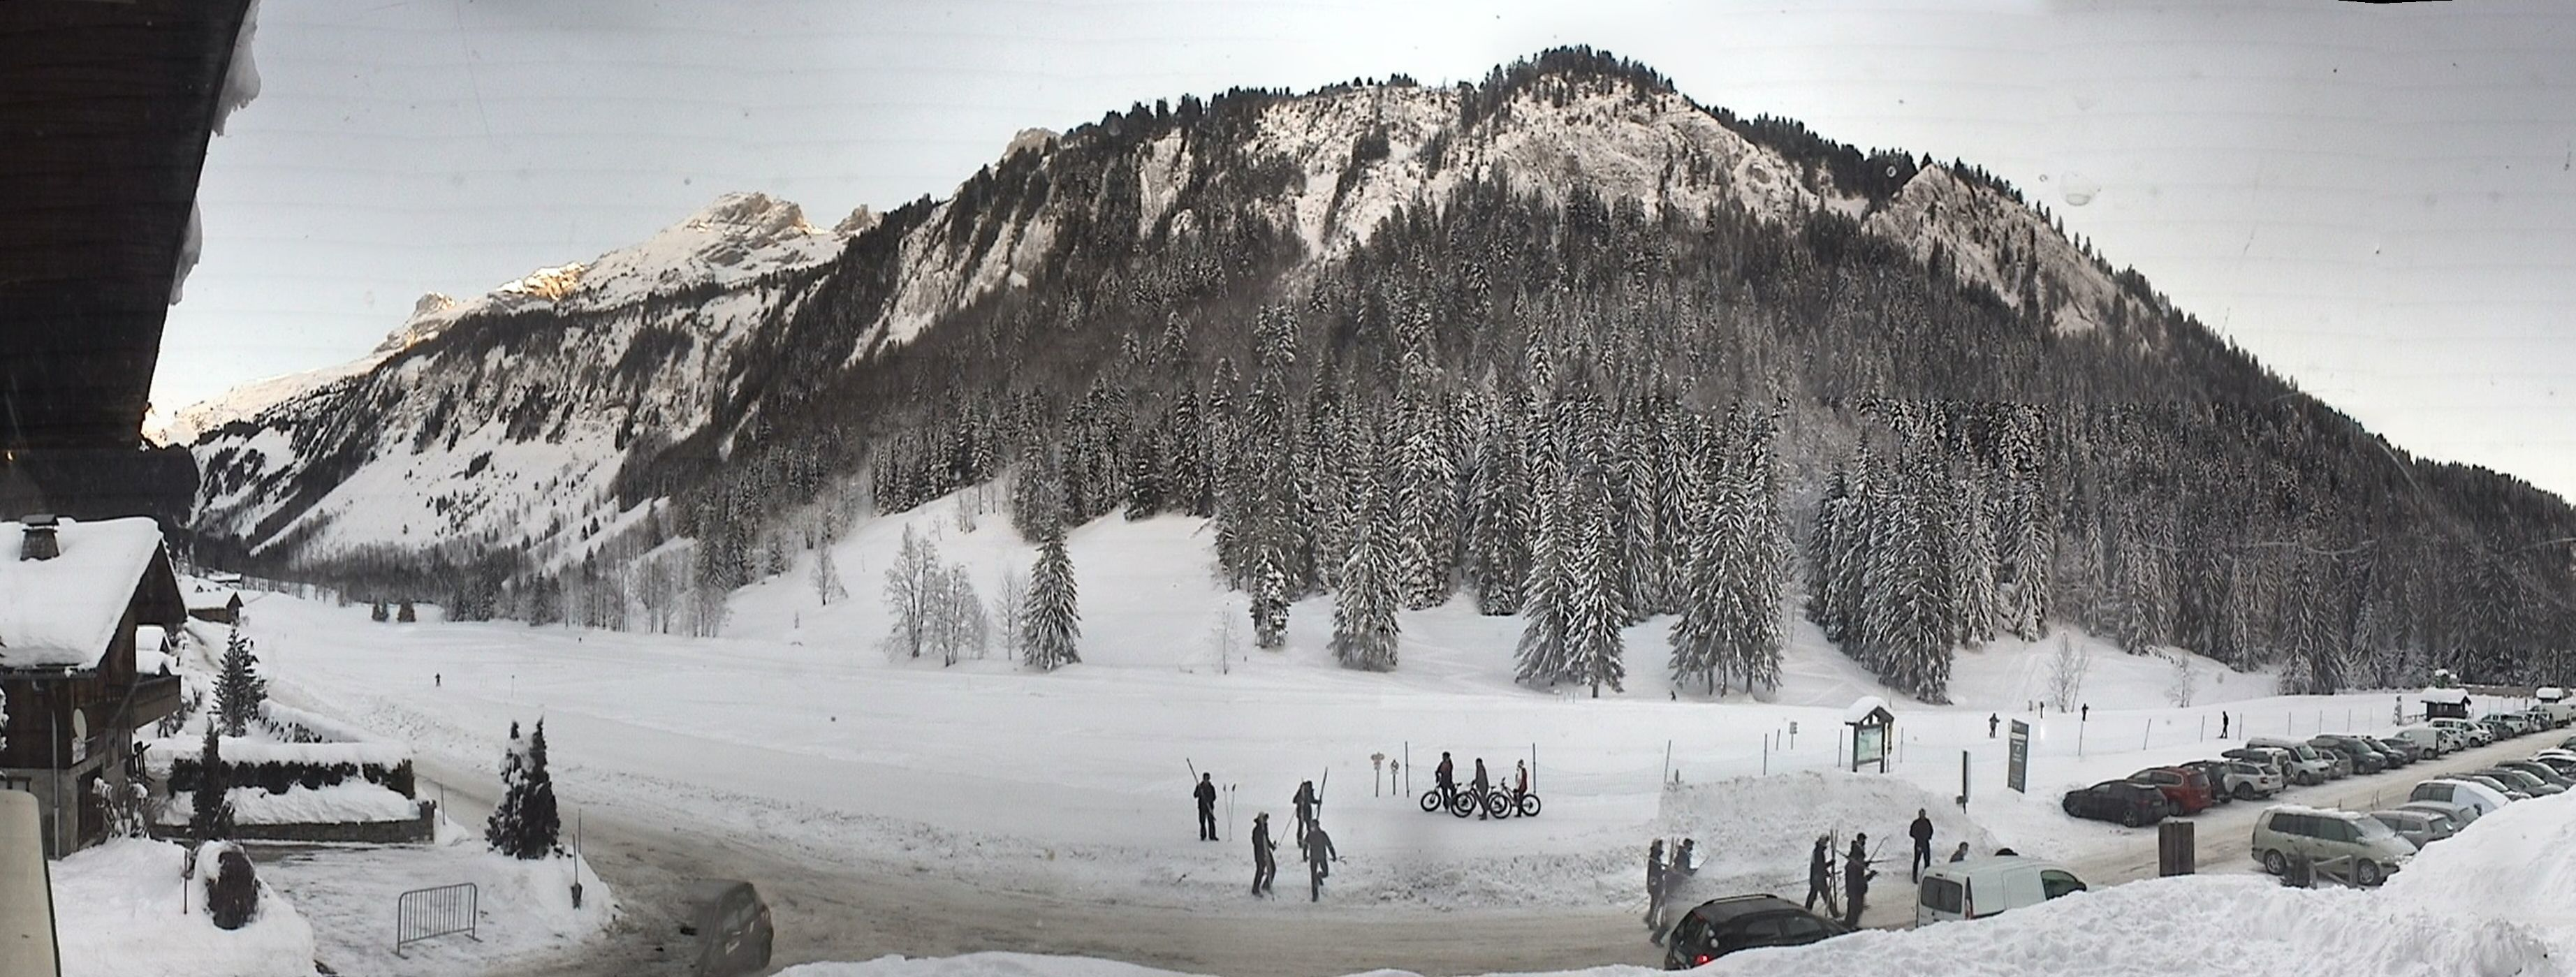 Webcam Grand Bornand